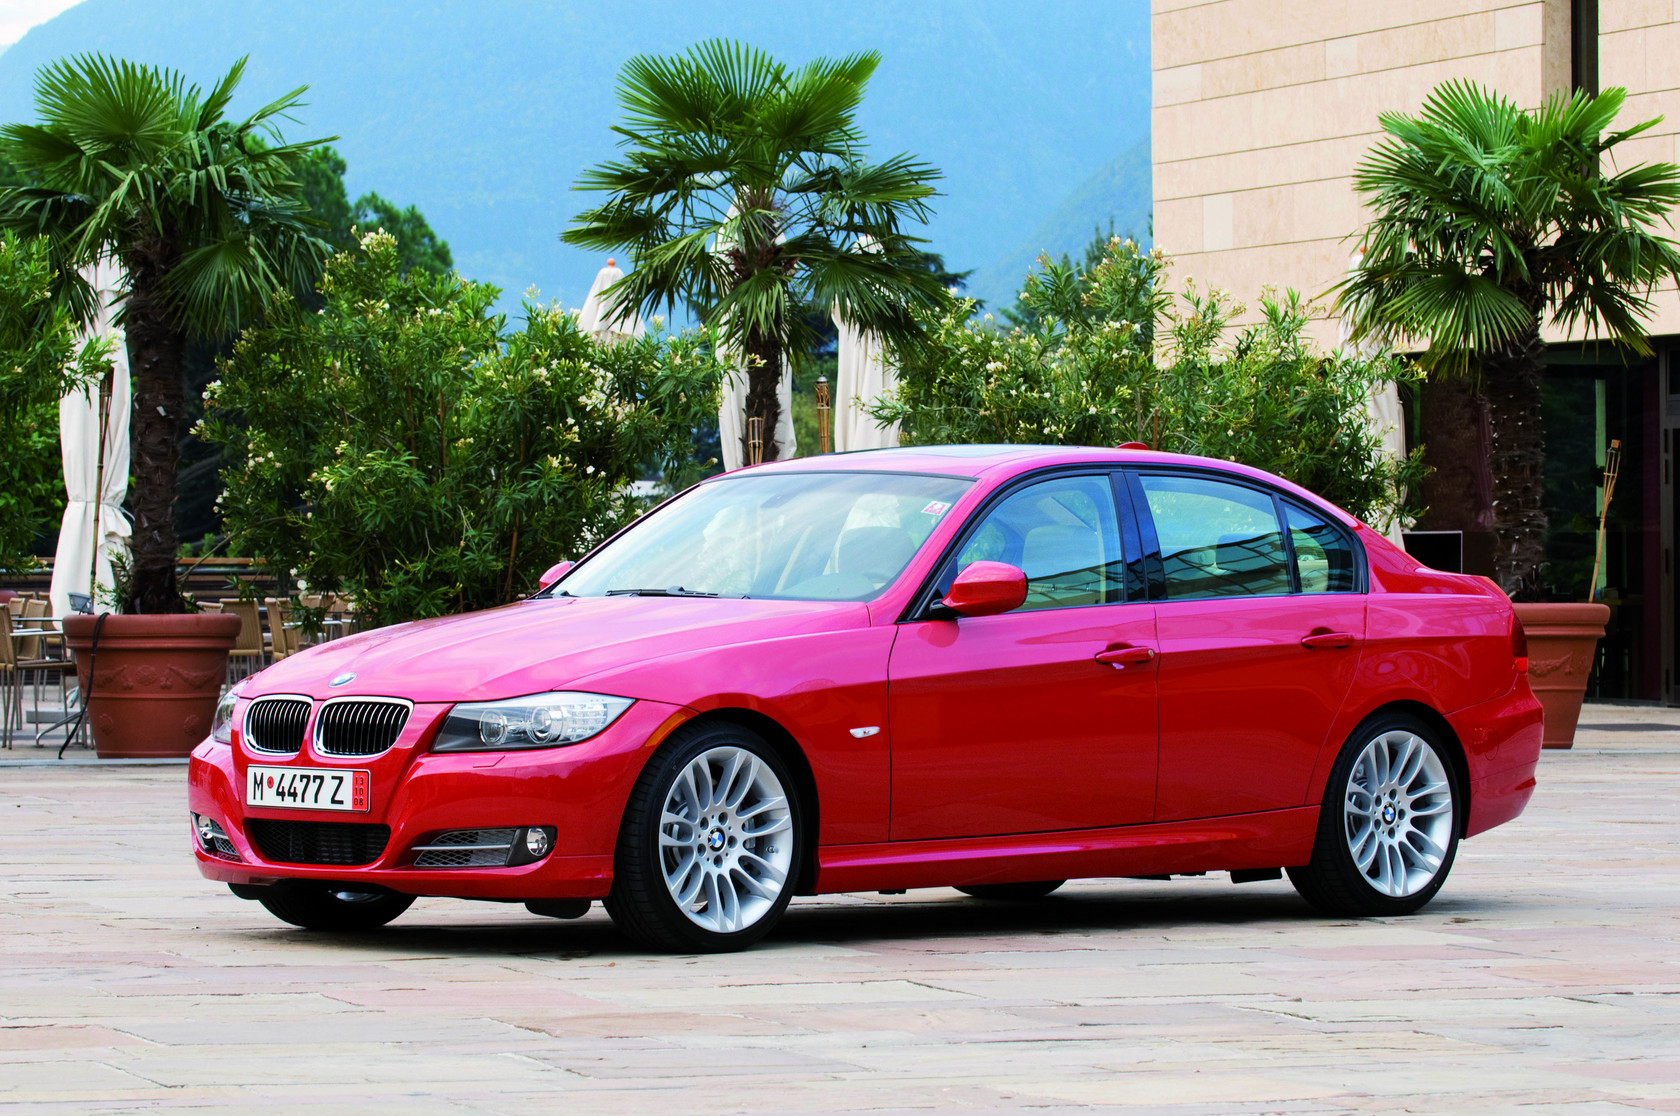 bmw 3 reeks auto wallpapers. Black Bedroom Furniture Sets. Home Design Ideas